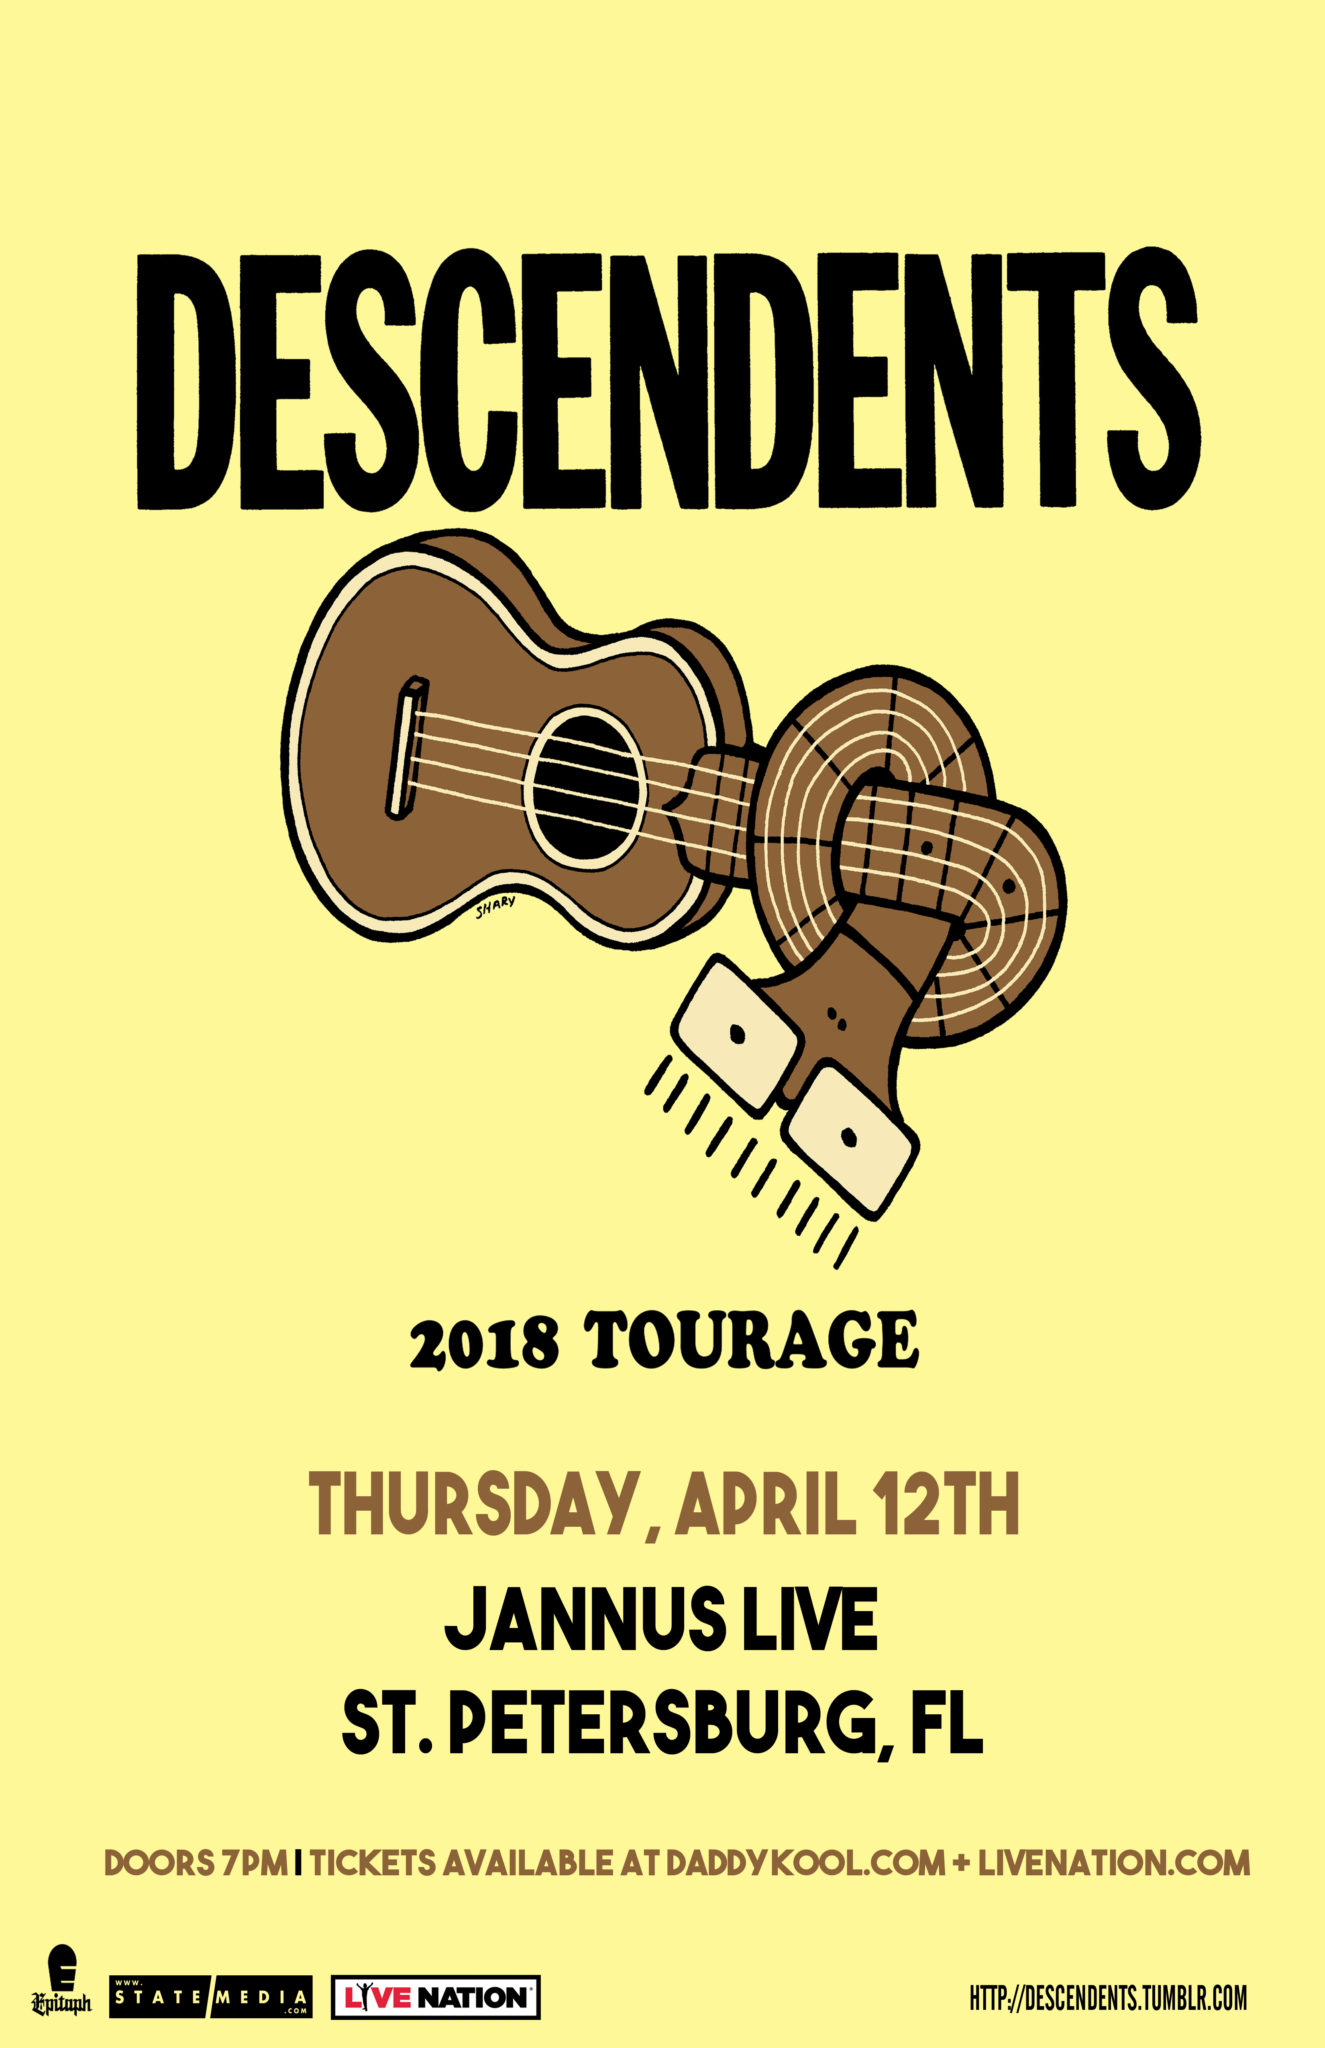 The Descendents Jannus Live 2018